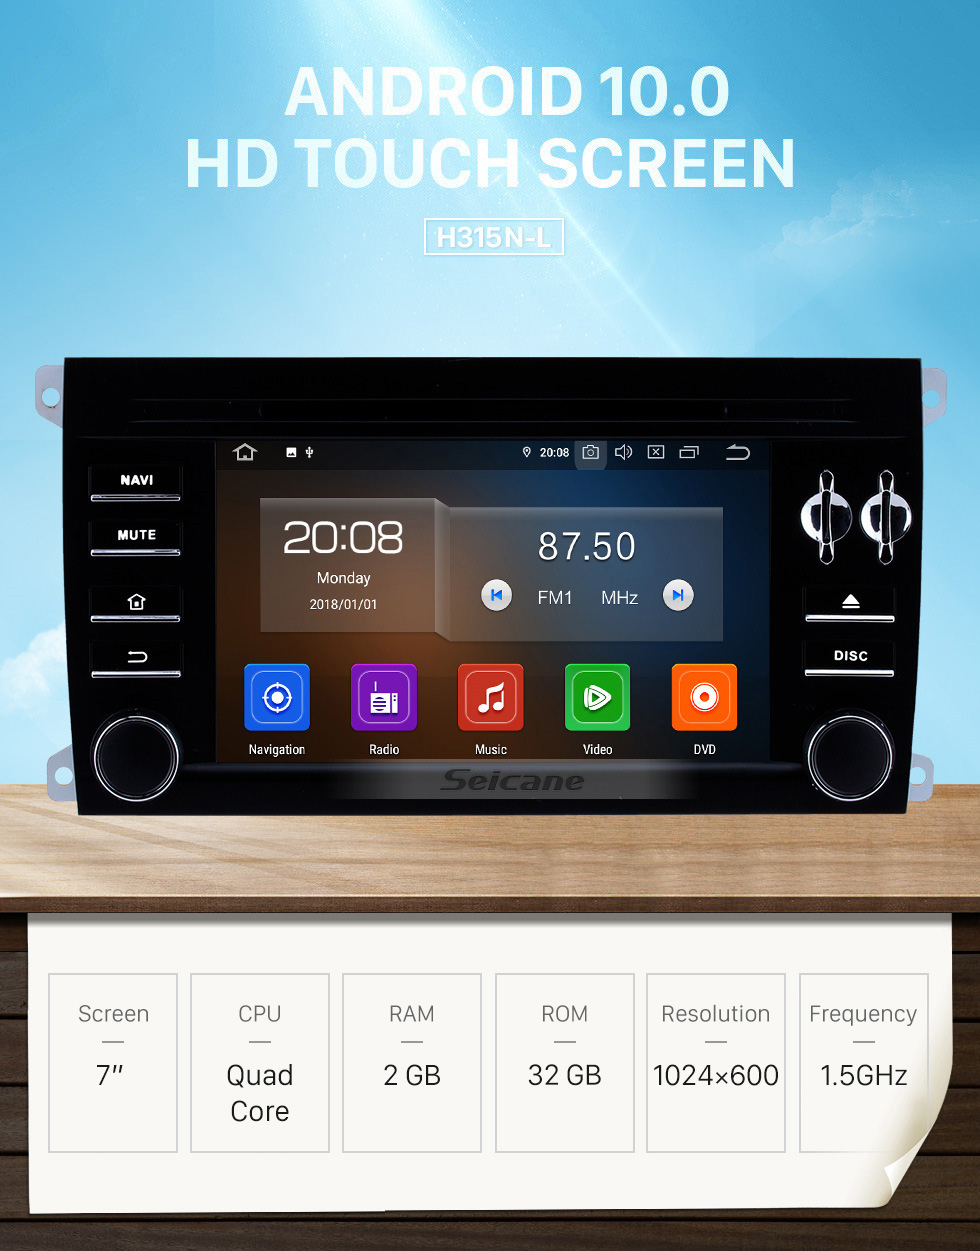 Seicane HD 1024*600 touchscreen 2003-2011 Porsche Cayenne Android 10.0 Radio Replacement with Aftermarket GPS DVD Player 3G WiFi Bluetooth Music Mirror Link OBD2 Backup Camera DVR AUX MP3 MP4 HD 1080P